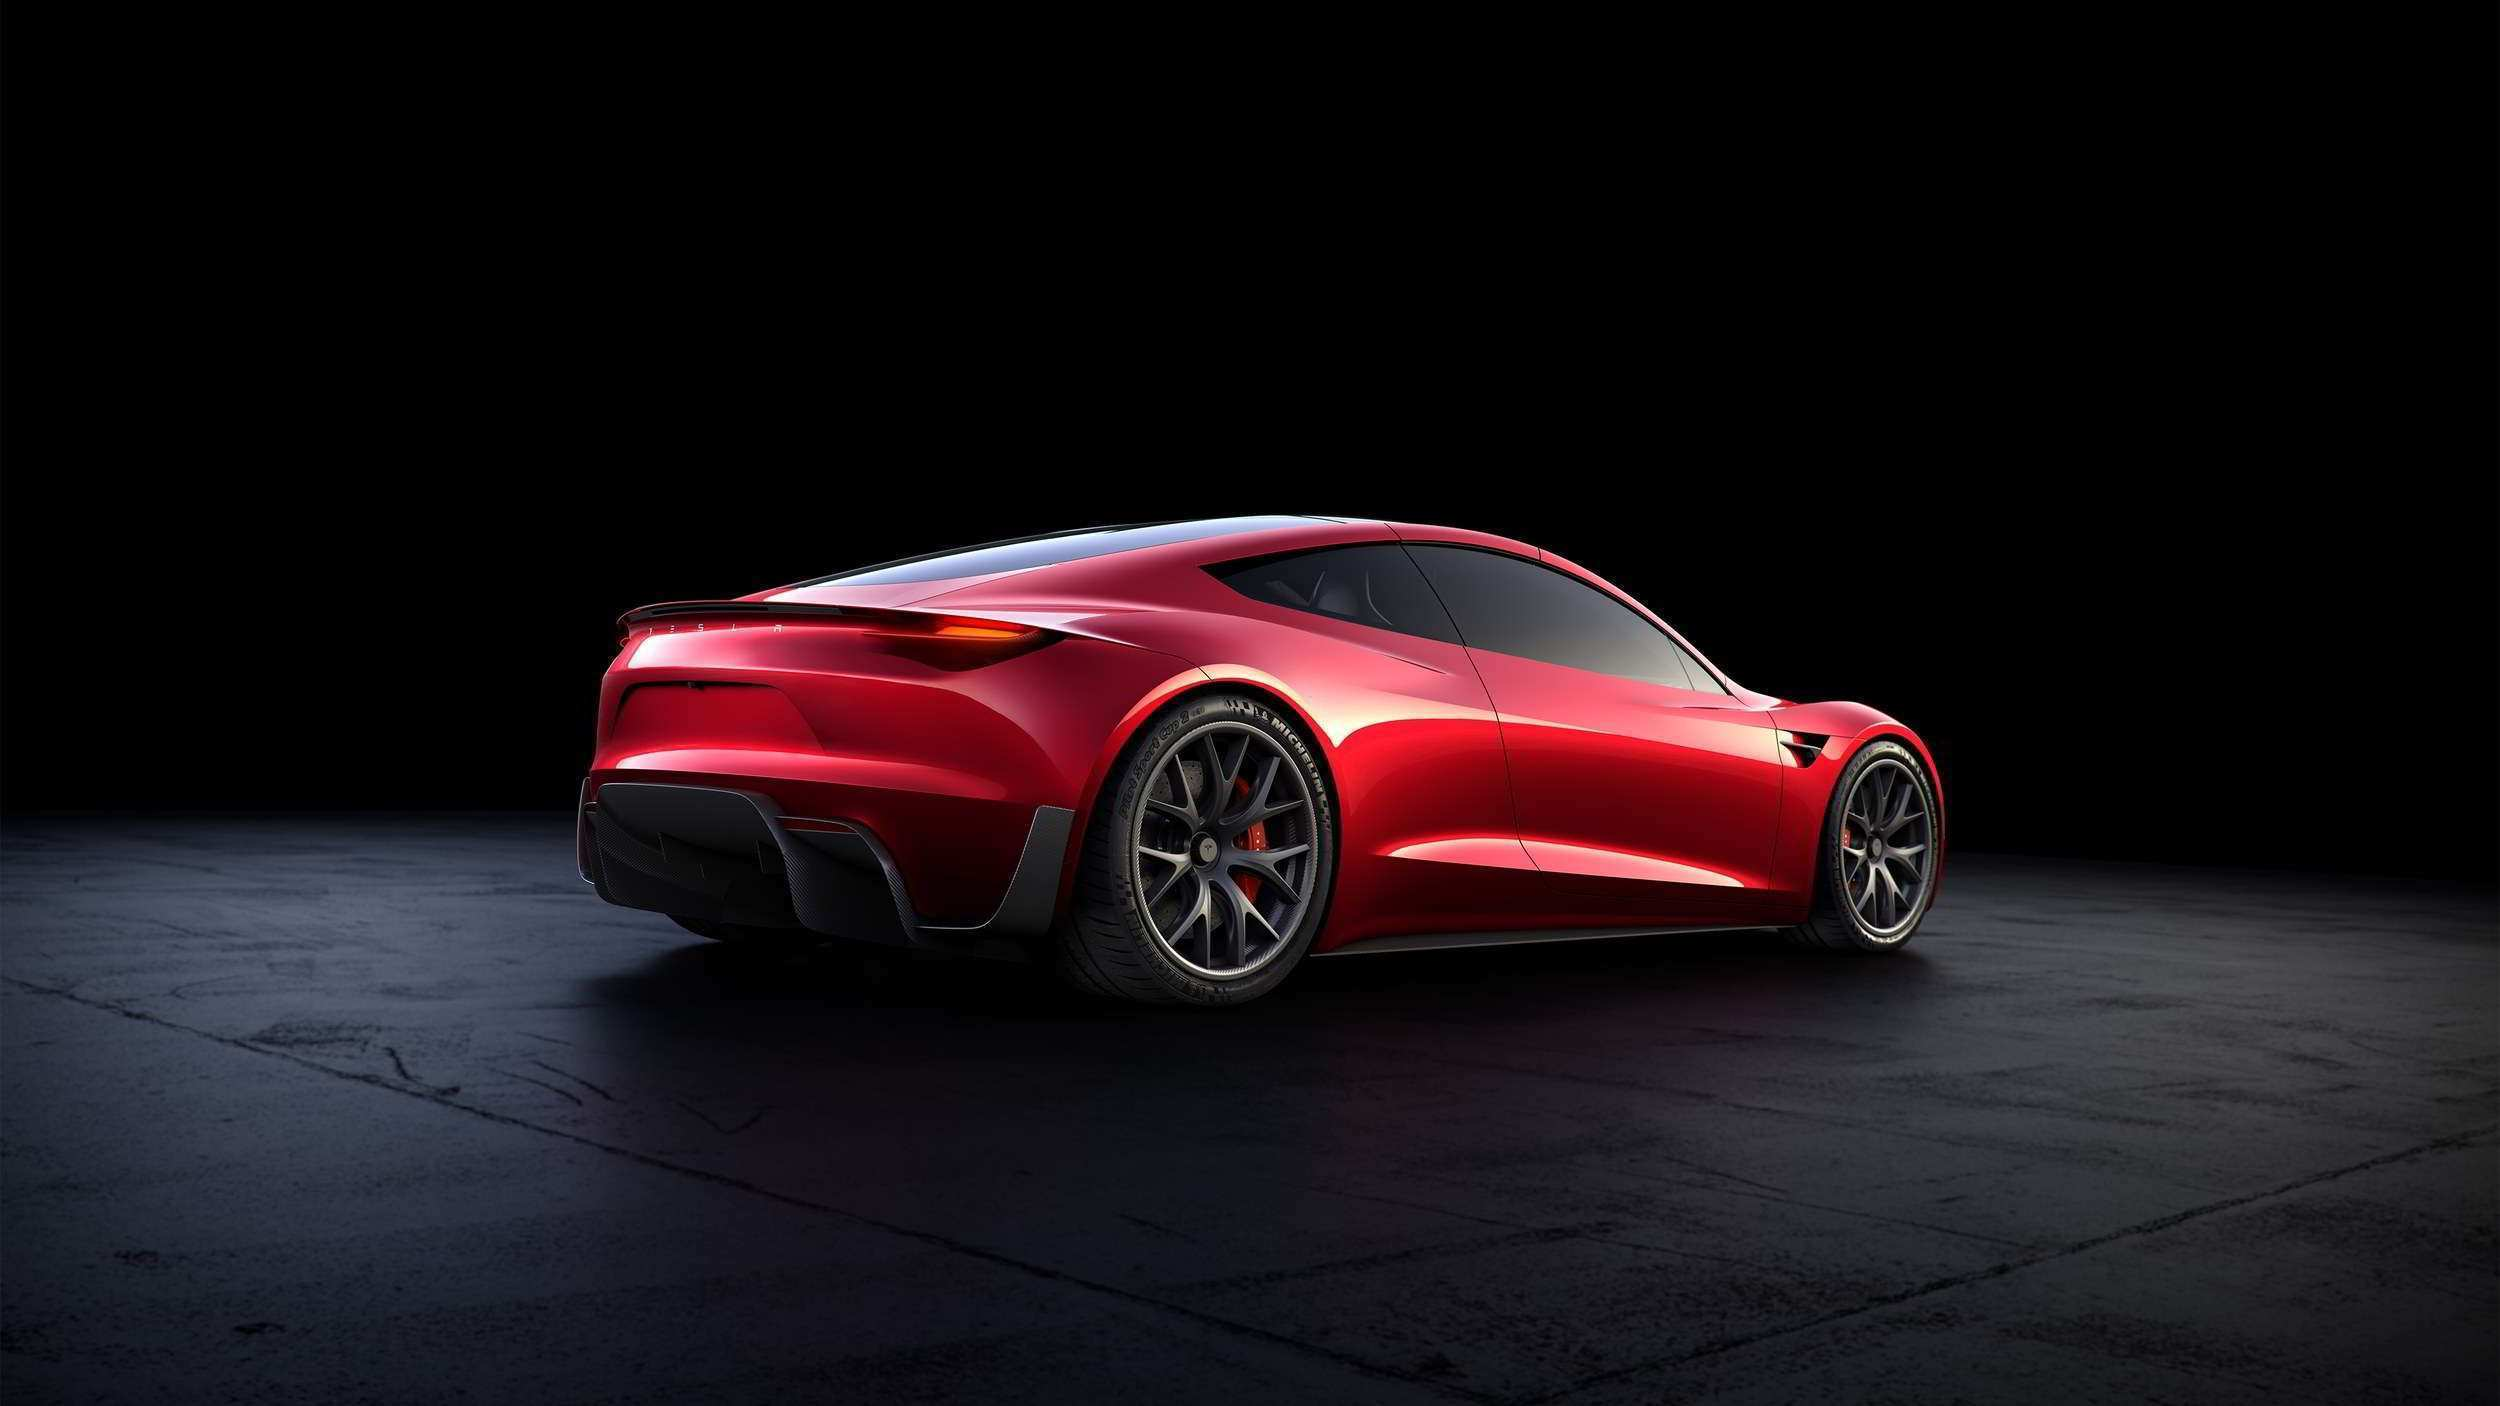 54 Gallery of 2020 Dodge Viper Roadster Engine by 2020 Dodge Viper Roadster